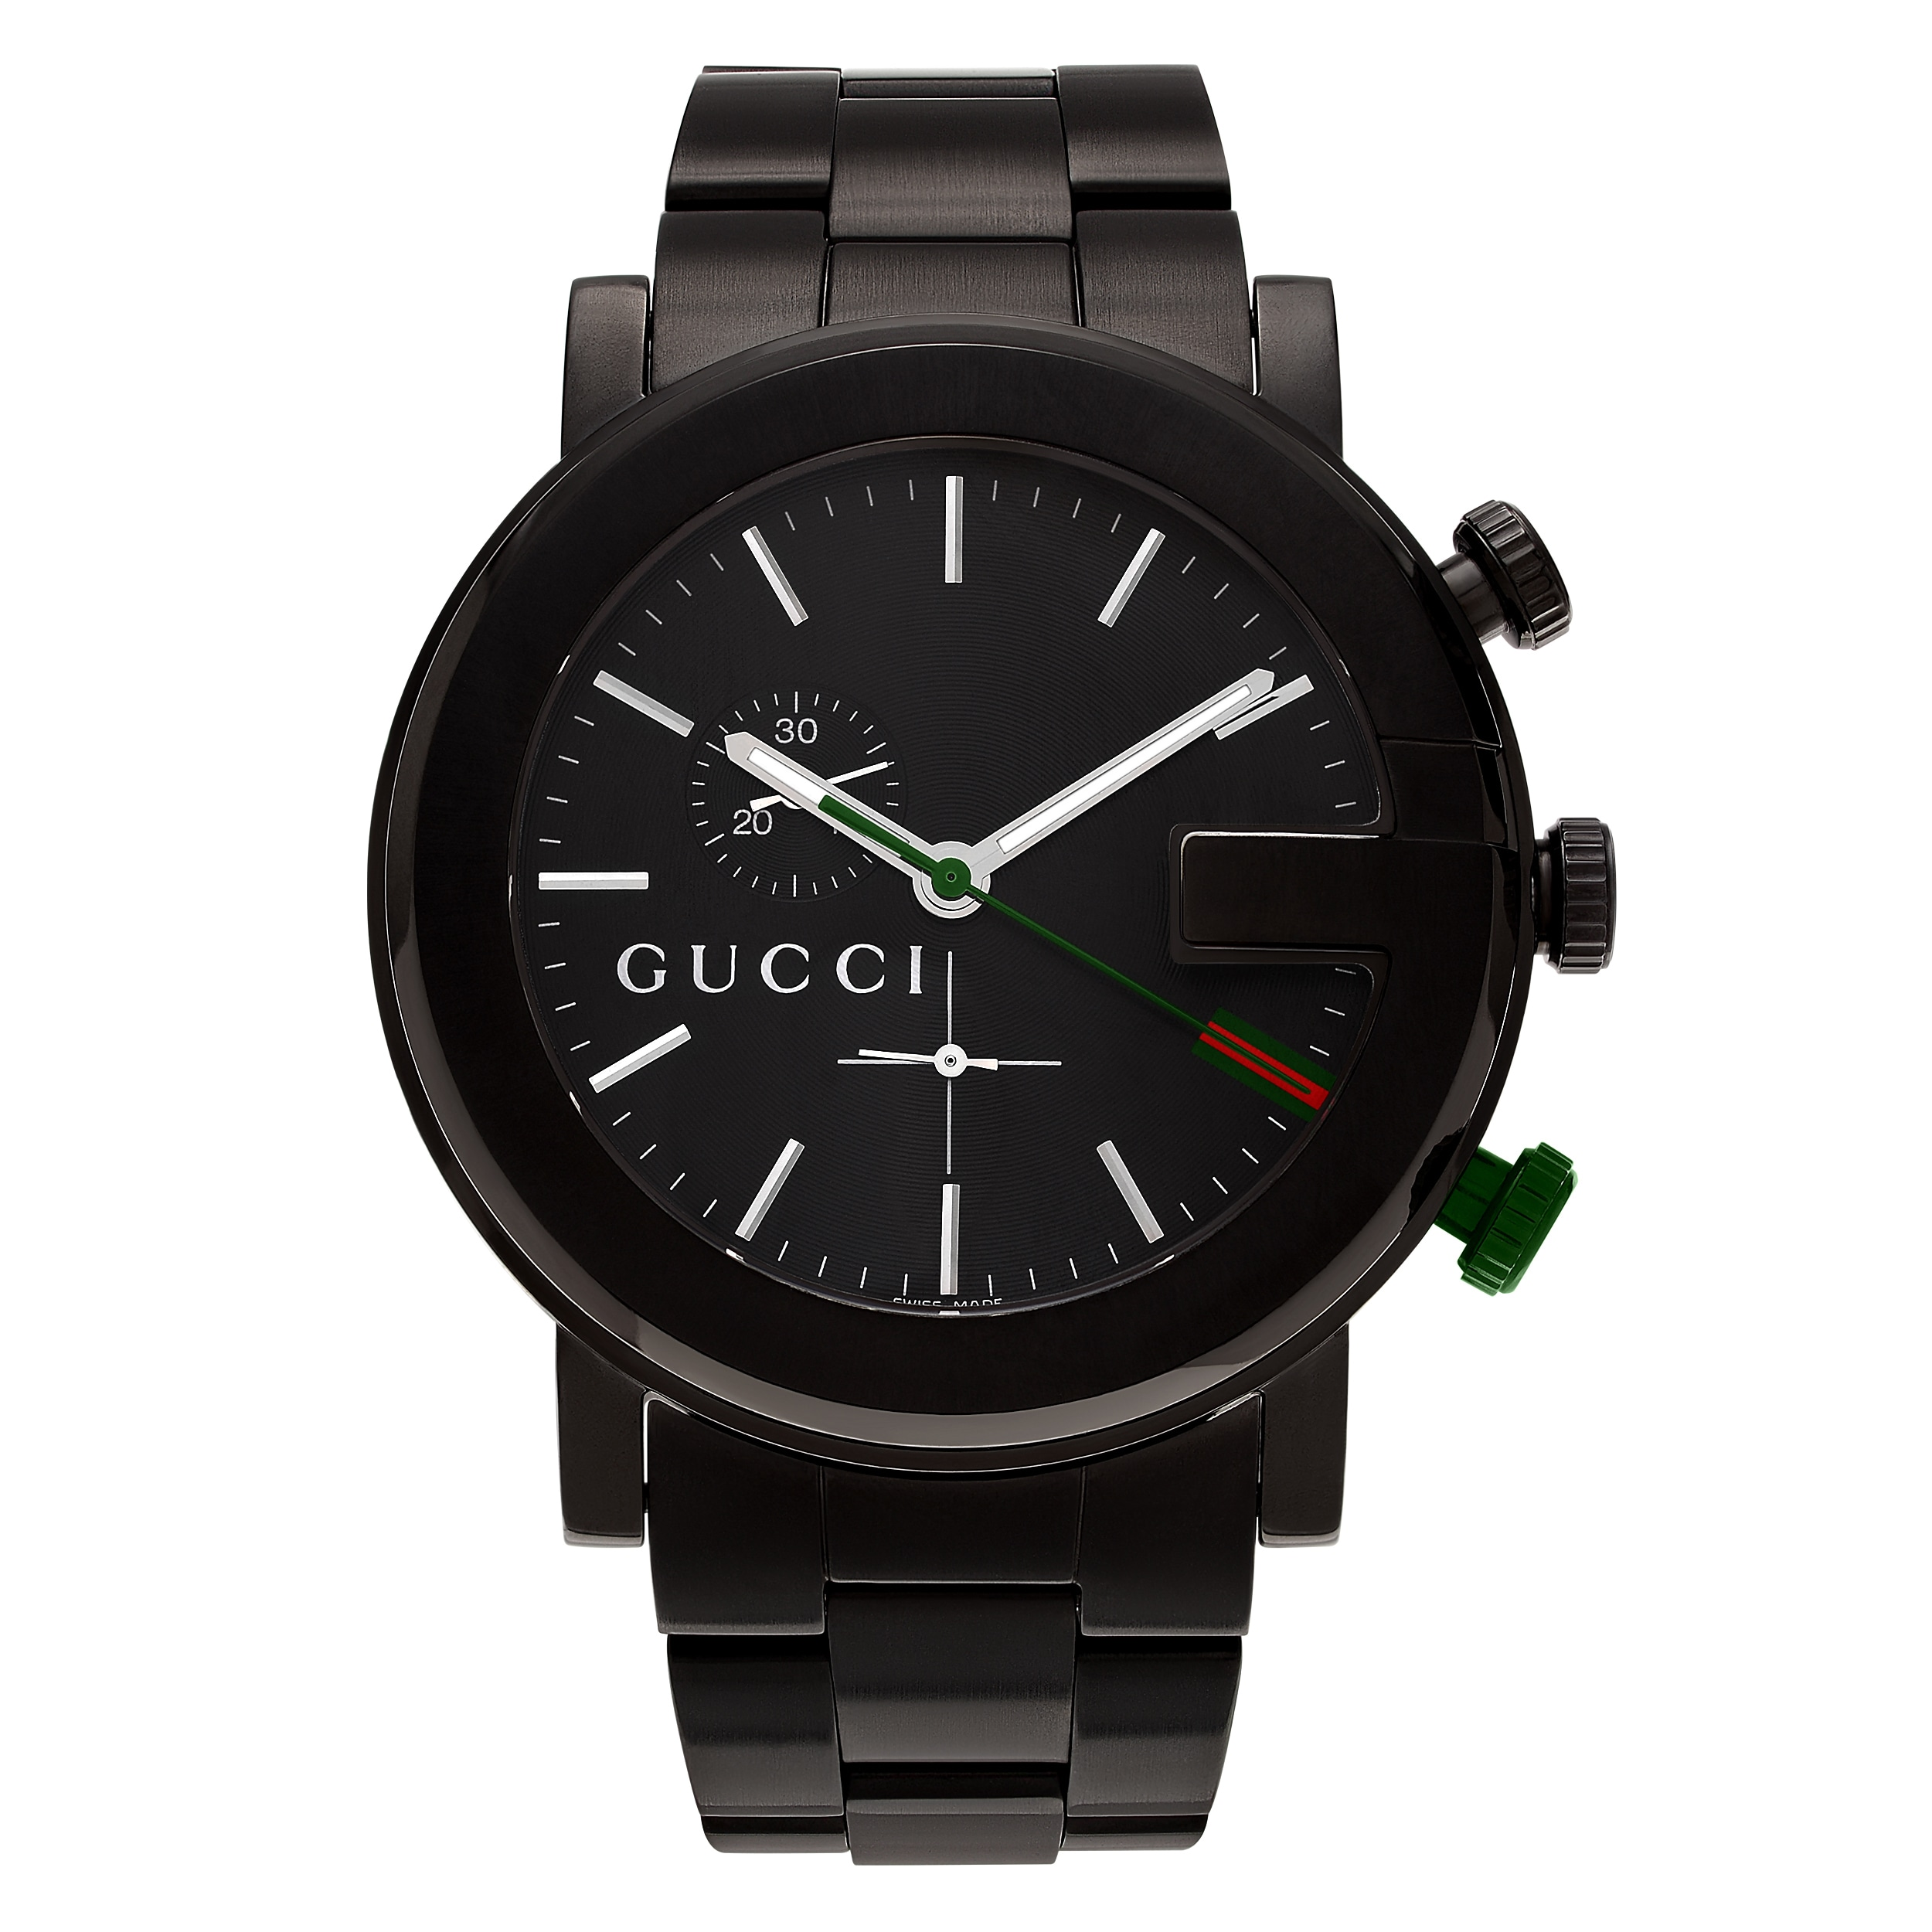 31ca215b0a1 Shop Gucci Men s  101G  YA101331 Black Ion Plated Chronograph Dial Link  Bracelet Watch - Free Shipping Today - Overstock - 13554512